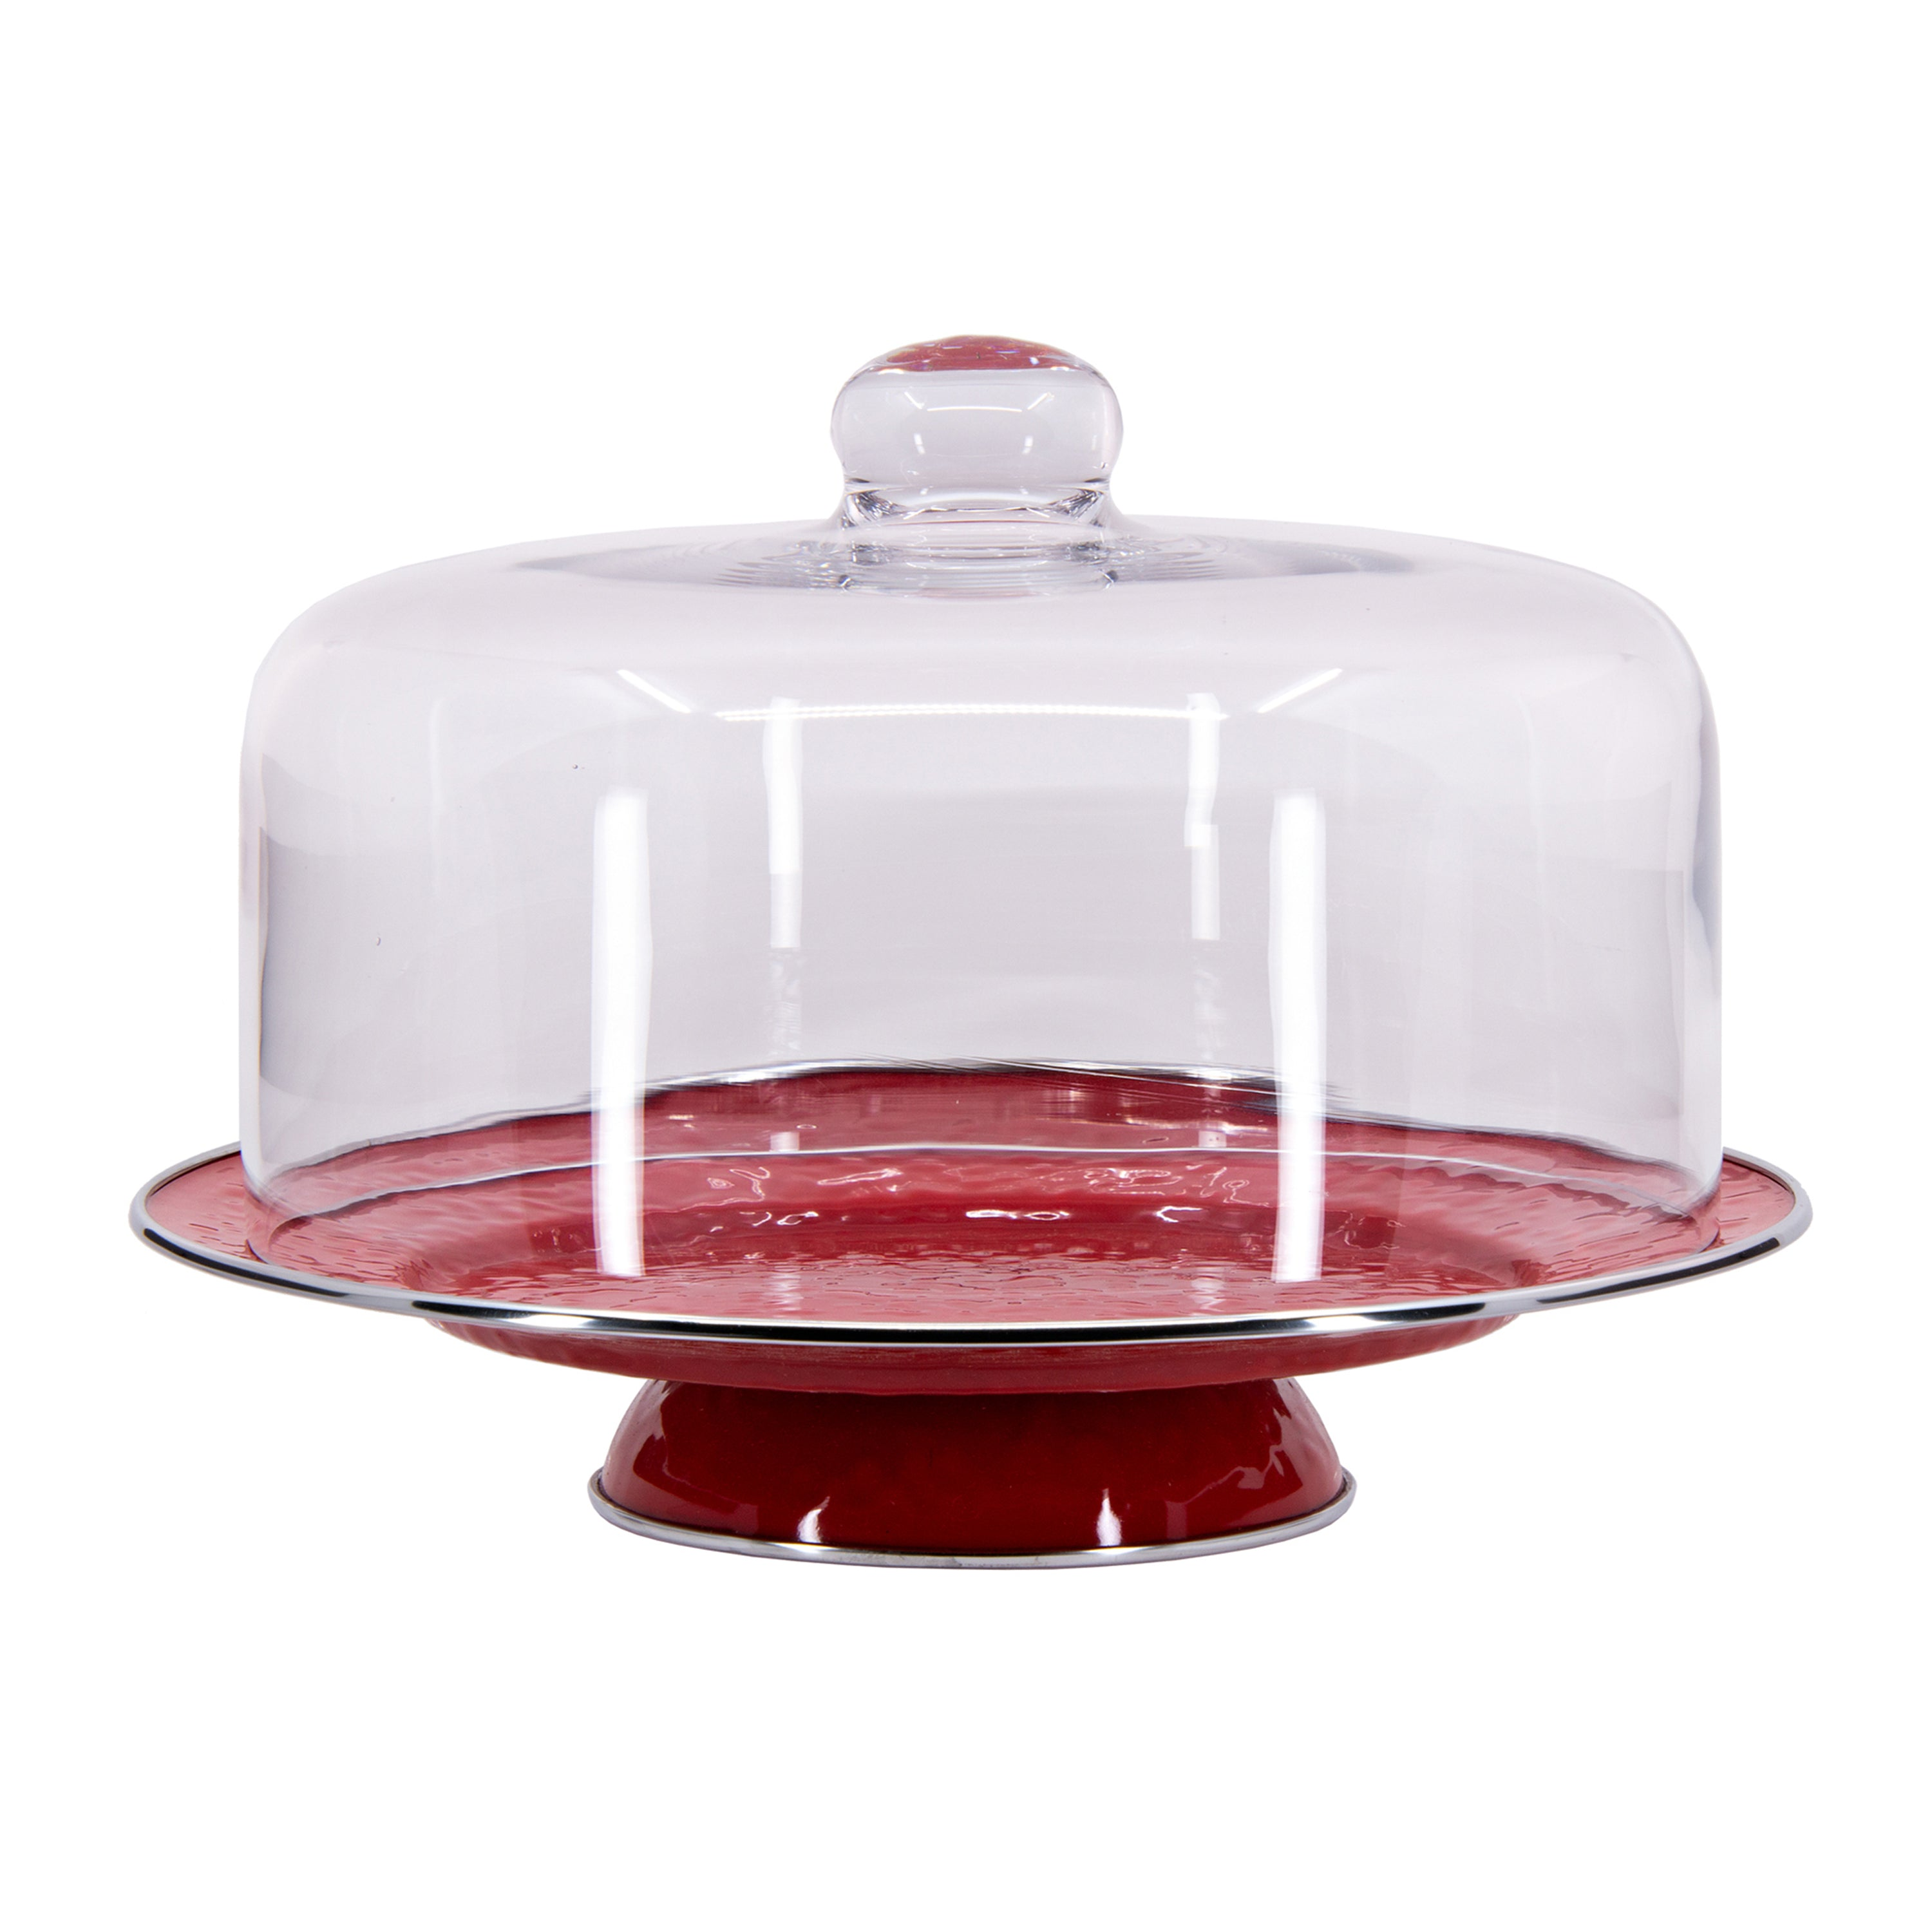 RR76 - Solid Red Cake Plate Image 2